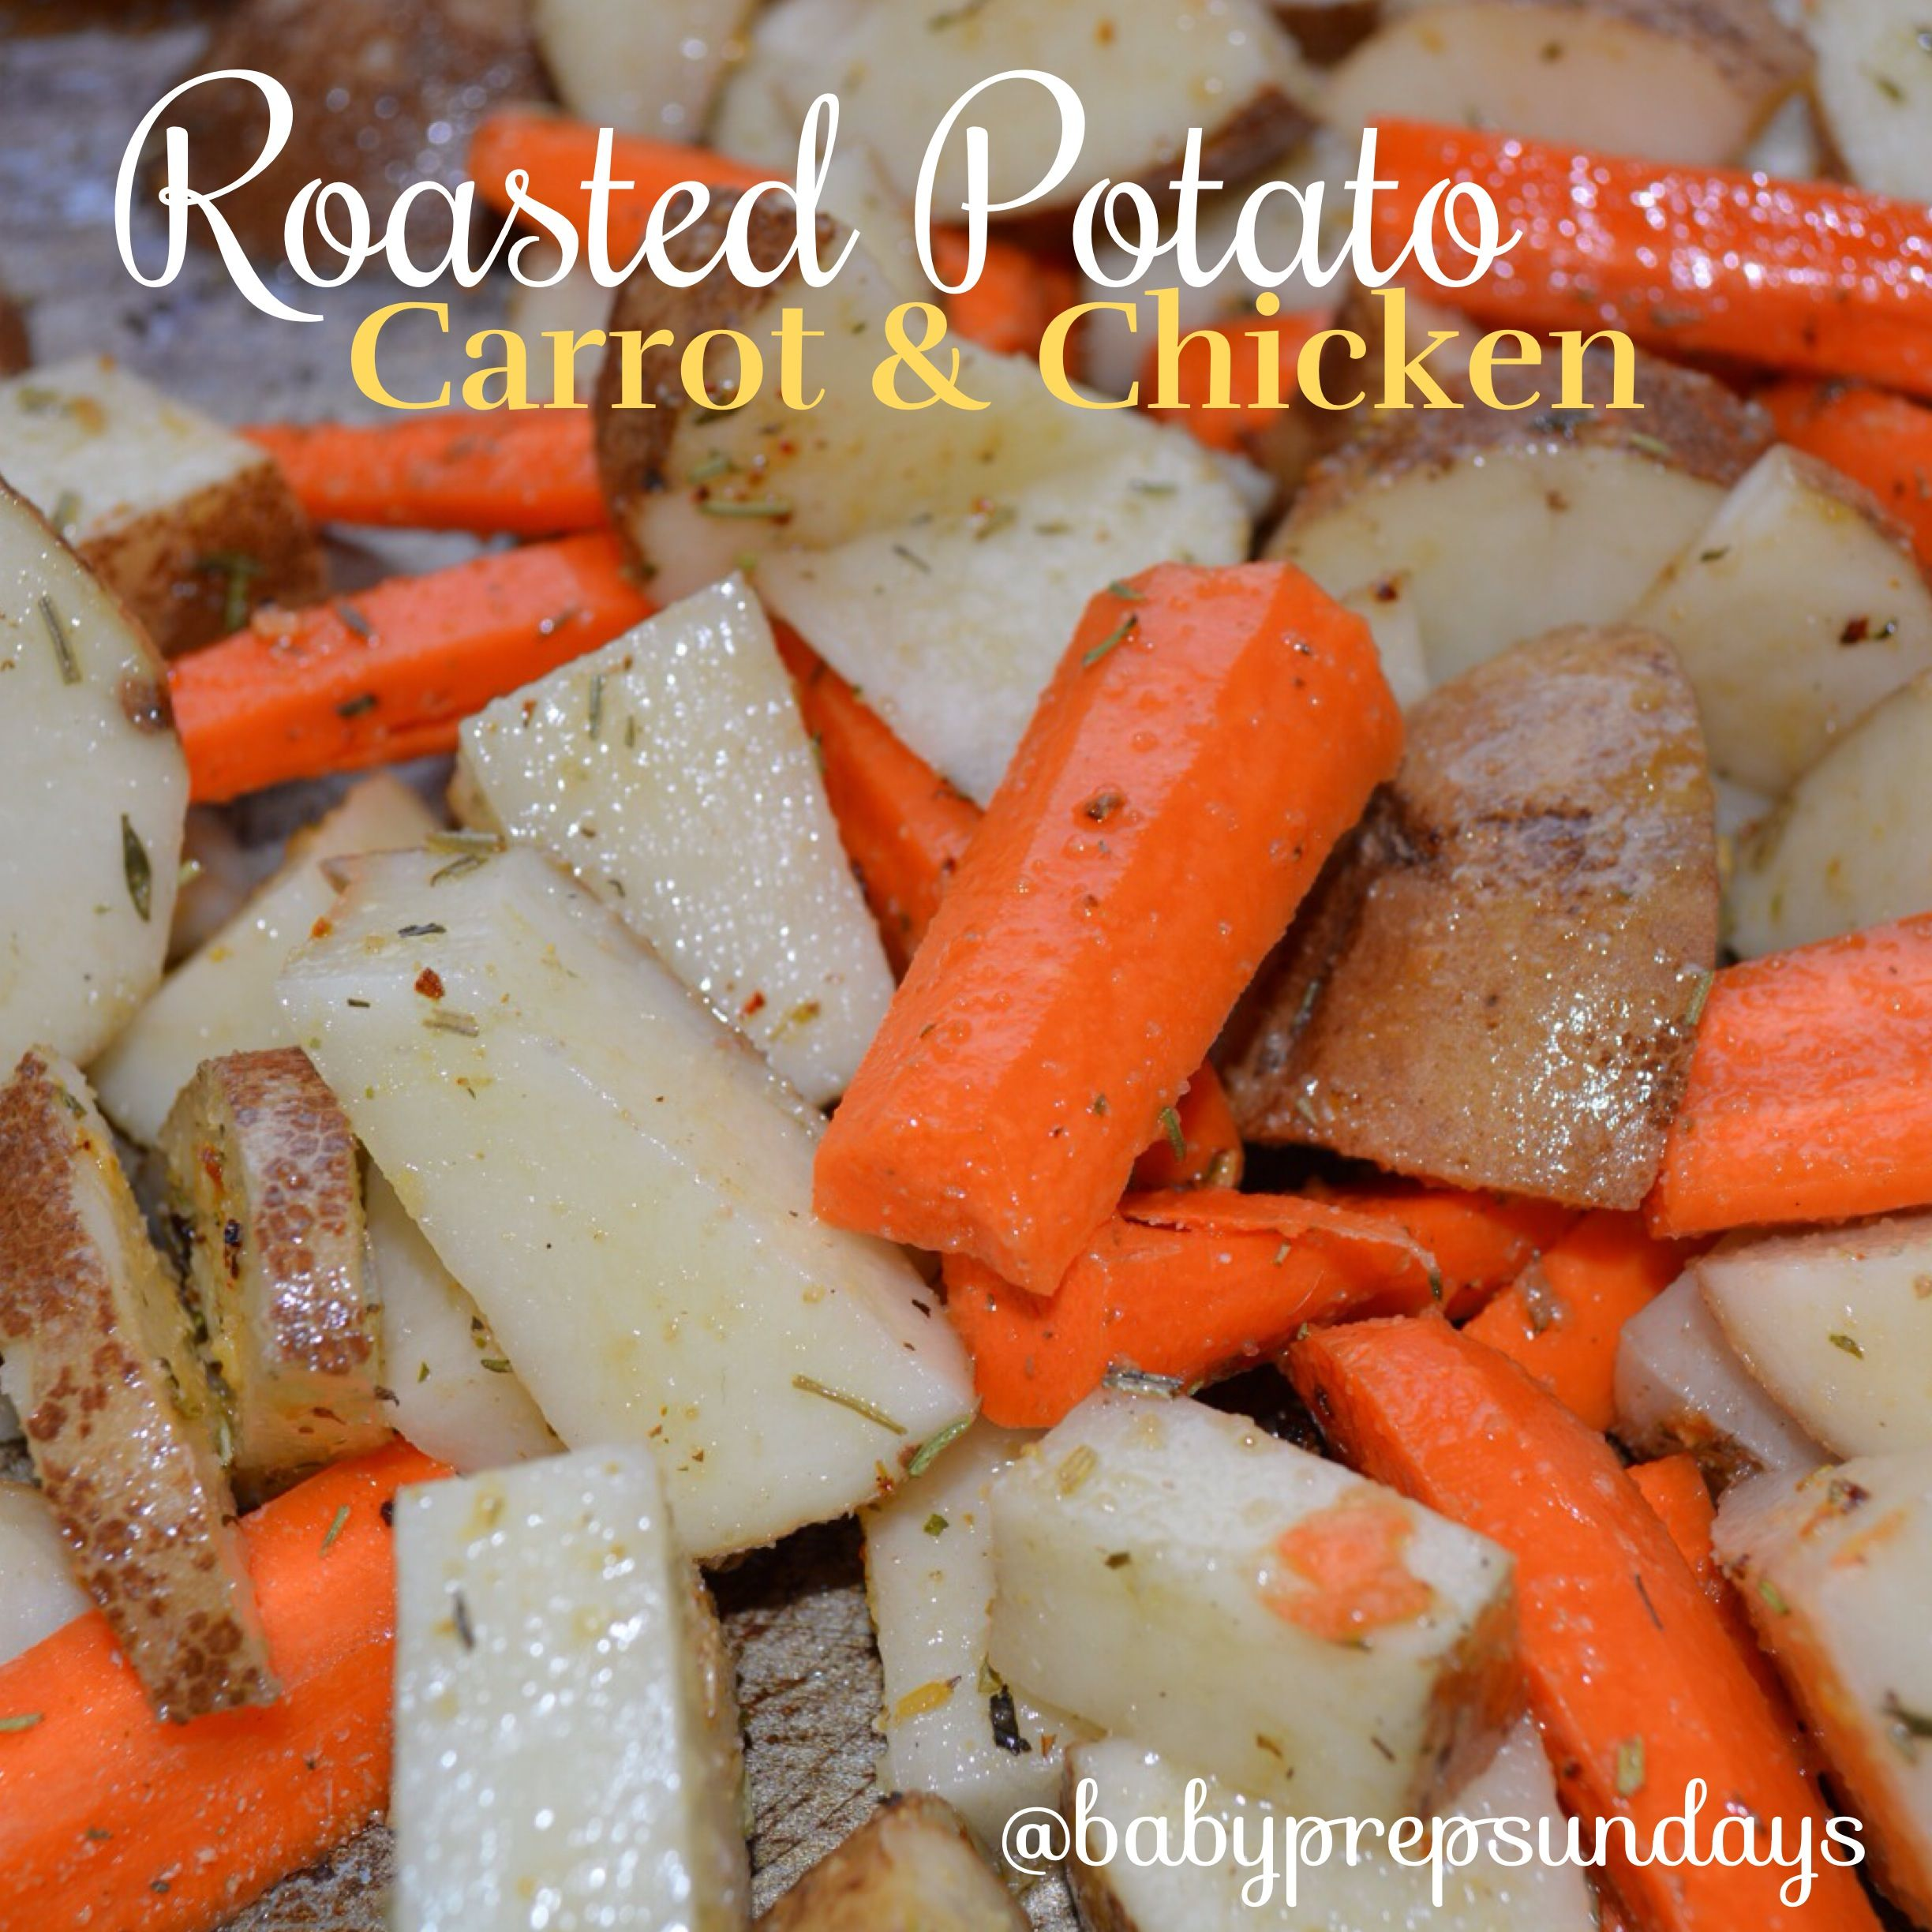 Roasted chicken potato and carrot for baby by babyprepsundays roasted chicken potato and carrot for baby by babyprepsundays forumfinder Image collections